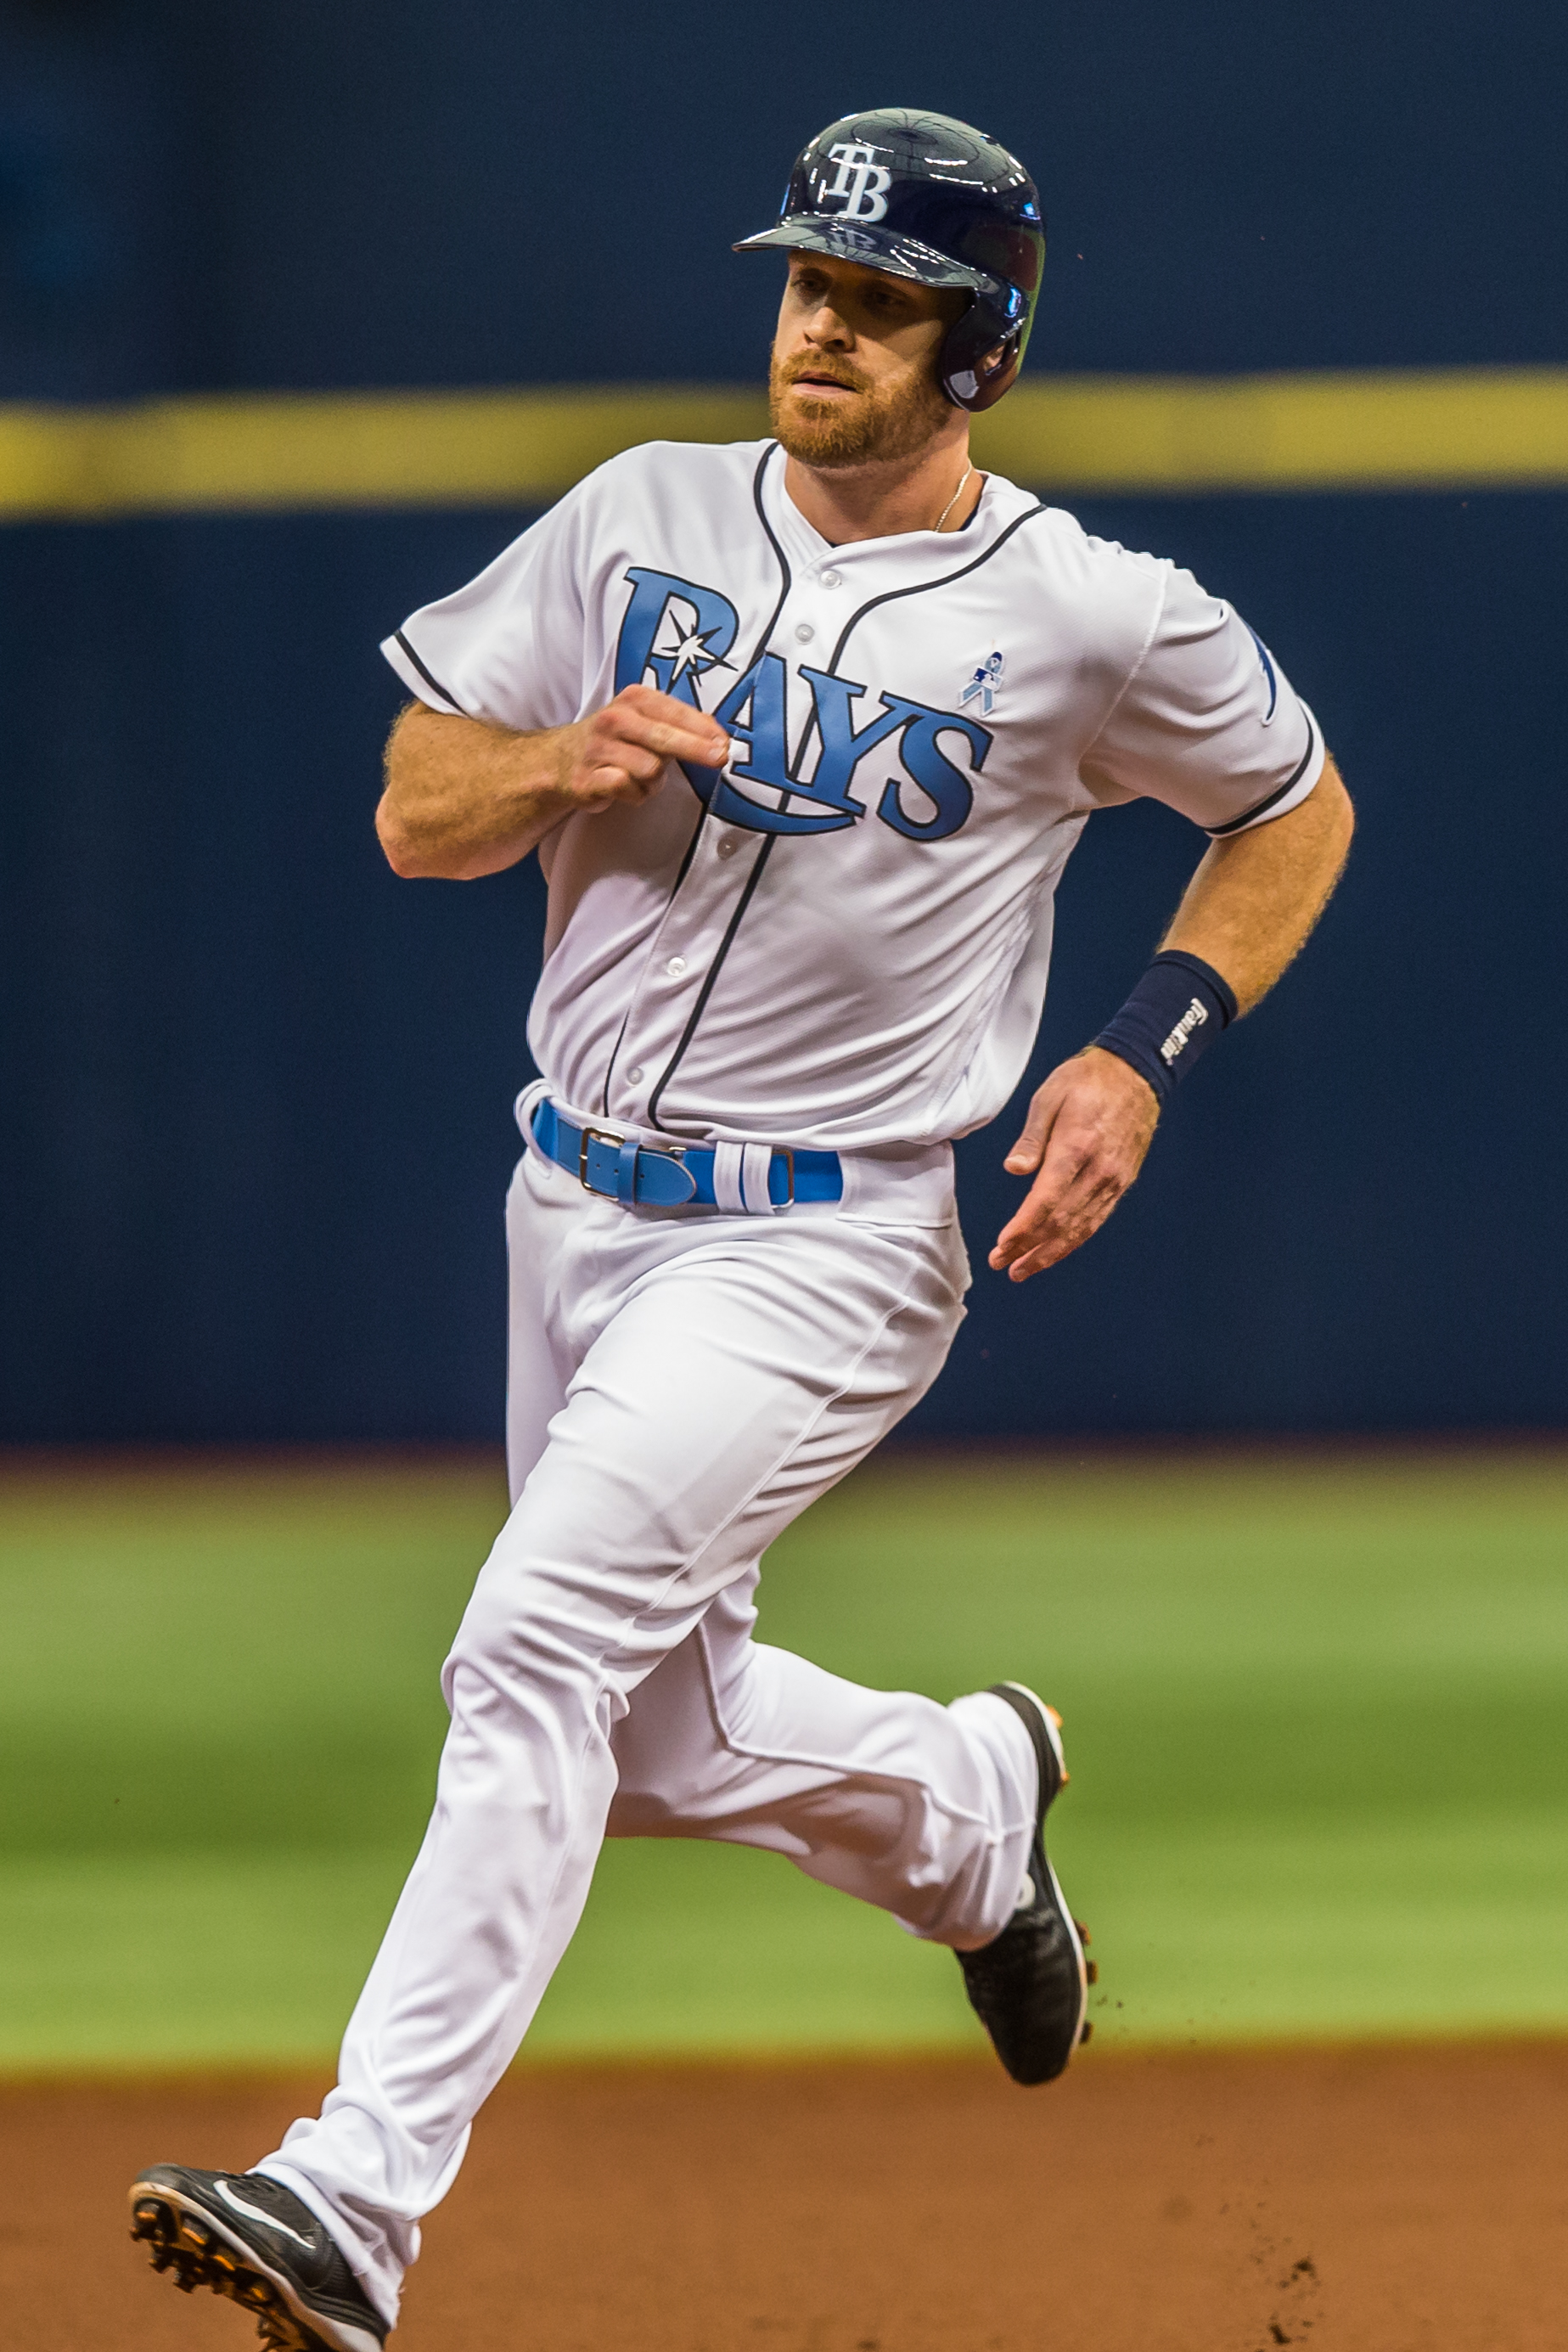 Logan Forsythe rounds second and heads for third./TRAVIS PENDERGRASS